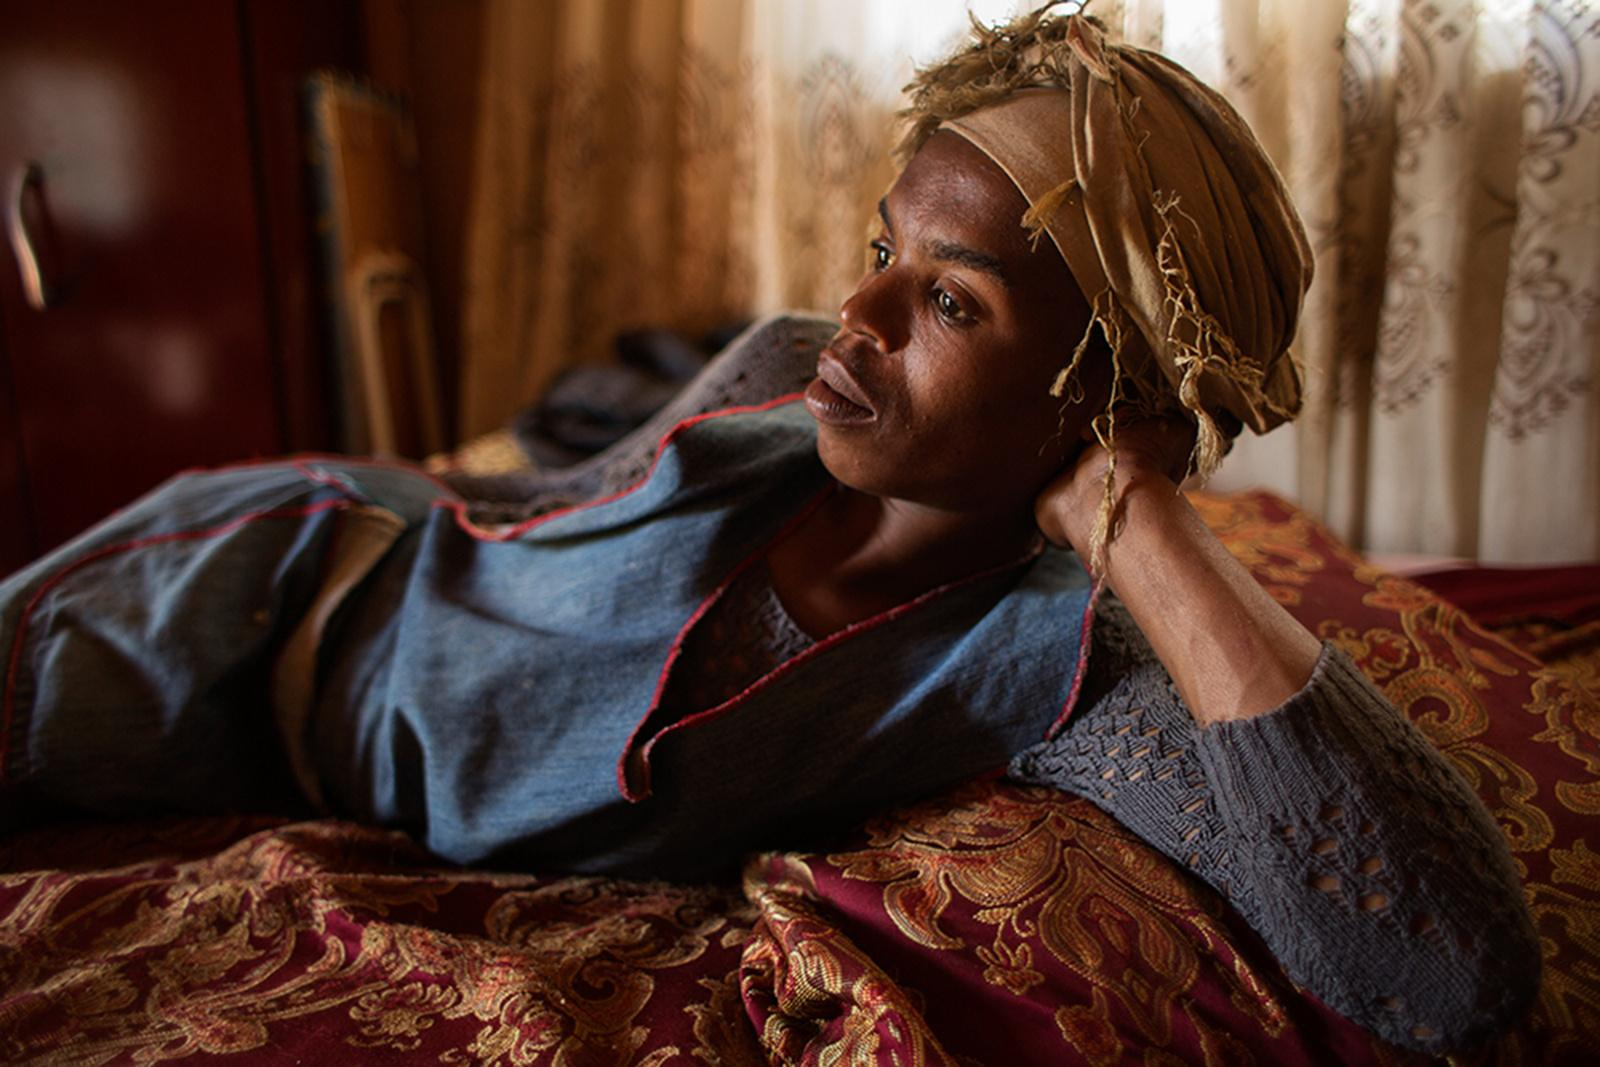 KWELERA, EAST LONDON, SOUTH AFRICA - AUGUST 27, 2014: Transgender woman Lozola Lanzibe, 24, lies on her bed wearing traditional Xhosa clothing August 27, 2014 in Kwelera, East London, South Africa. Identifying as a female, Lazola sticks to the traditional gender roles in her community in that women are the homekeepers whose main duties are cleaning, cooking, fetching water, collecting firewood and looking after the children.